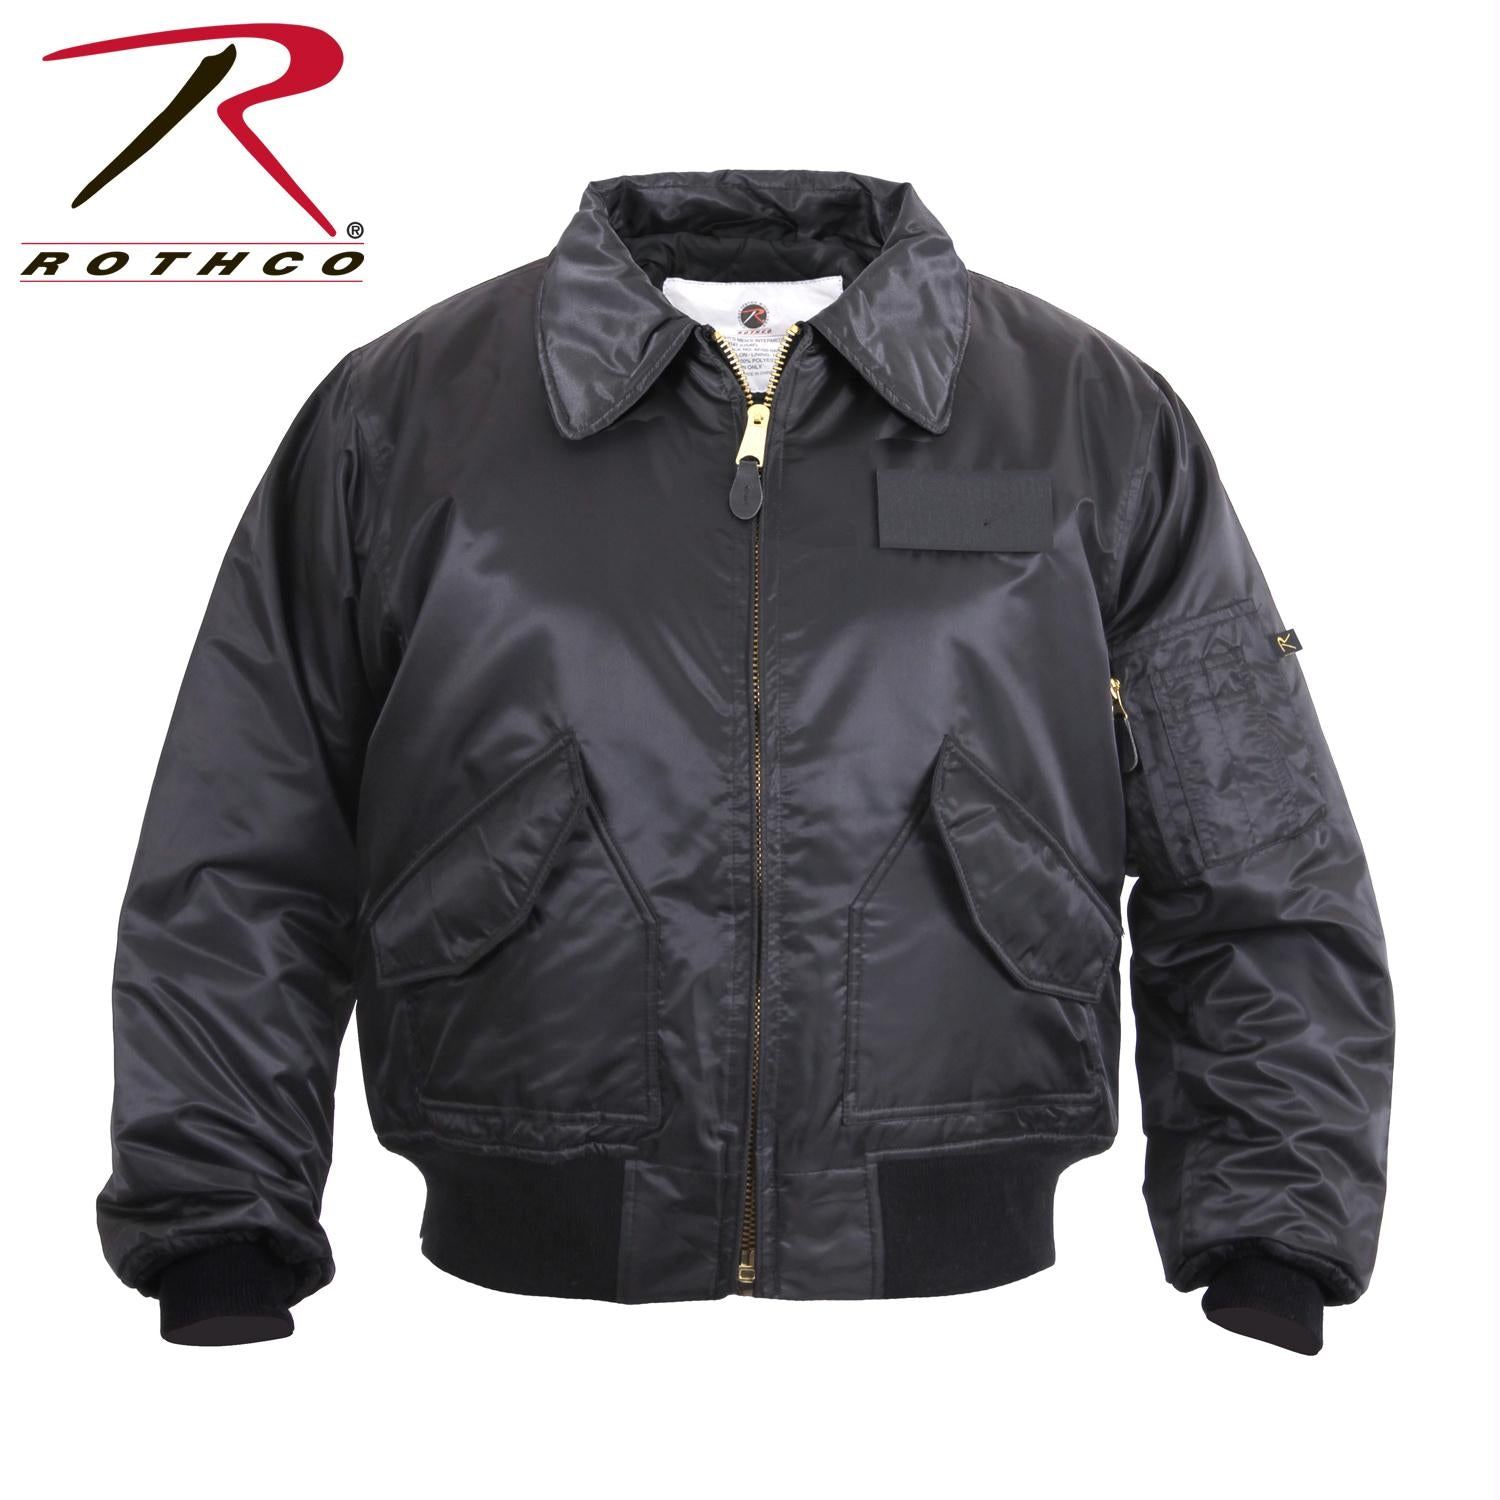 Rothco CWU-45P Flight Jacket - Black / S